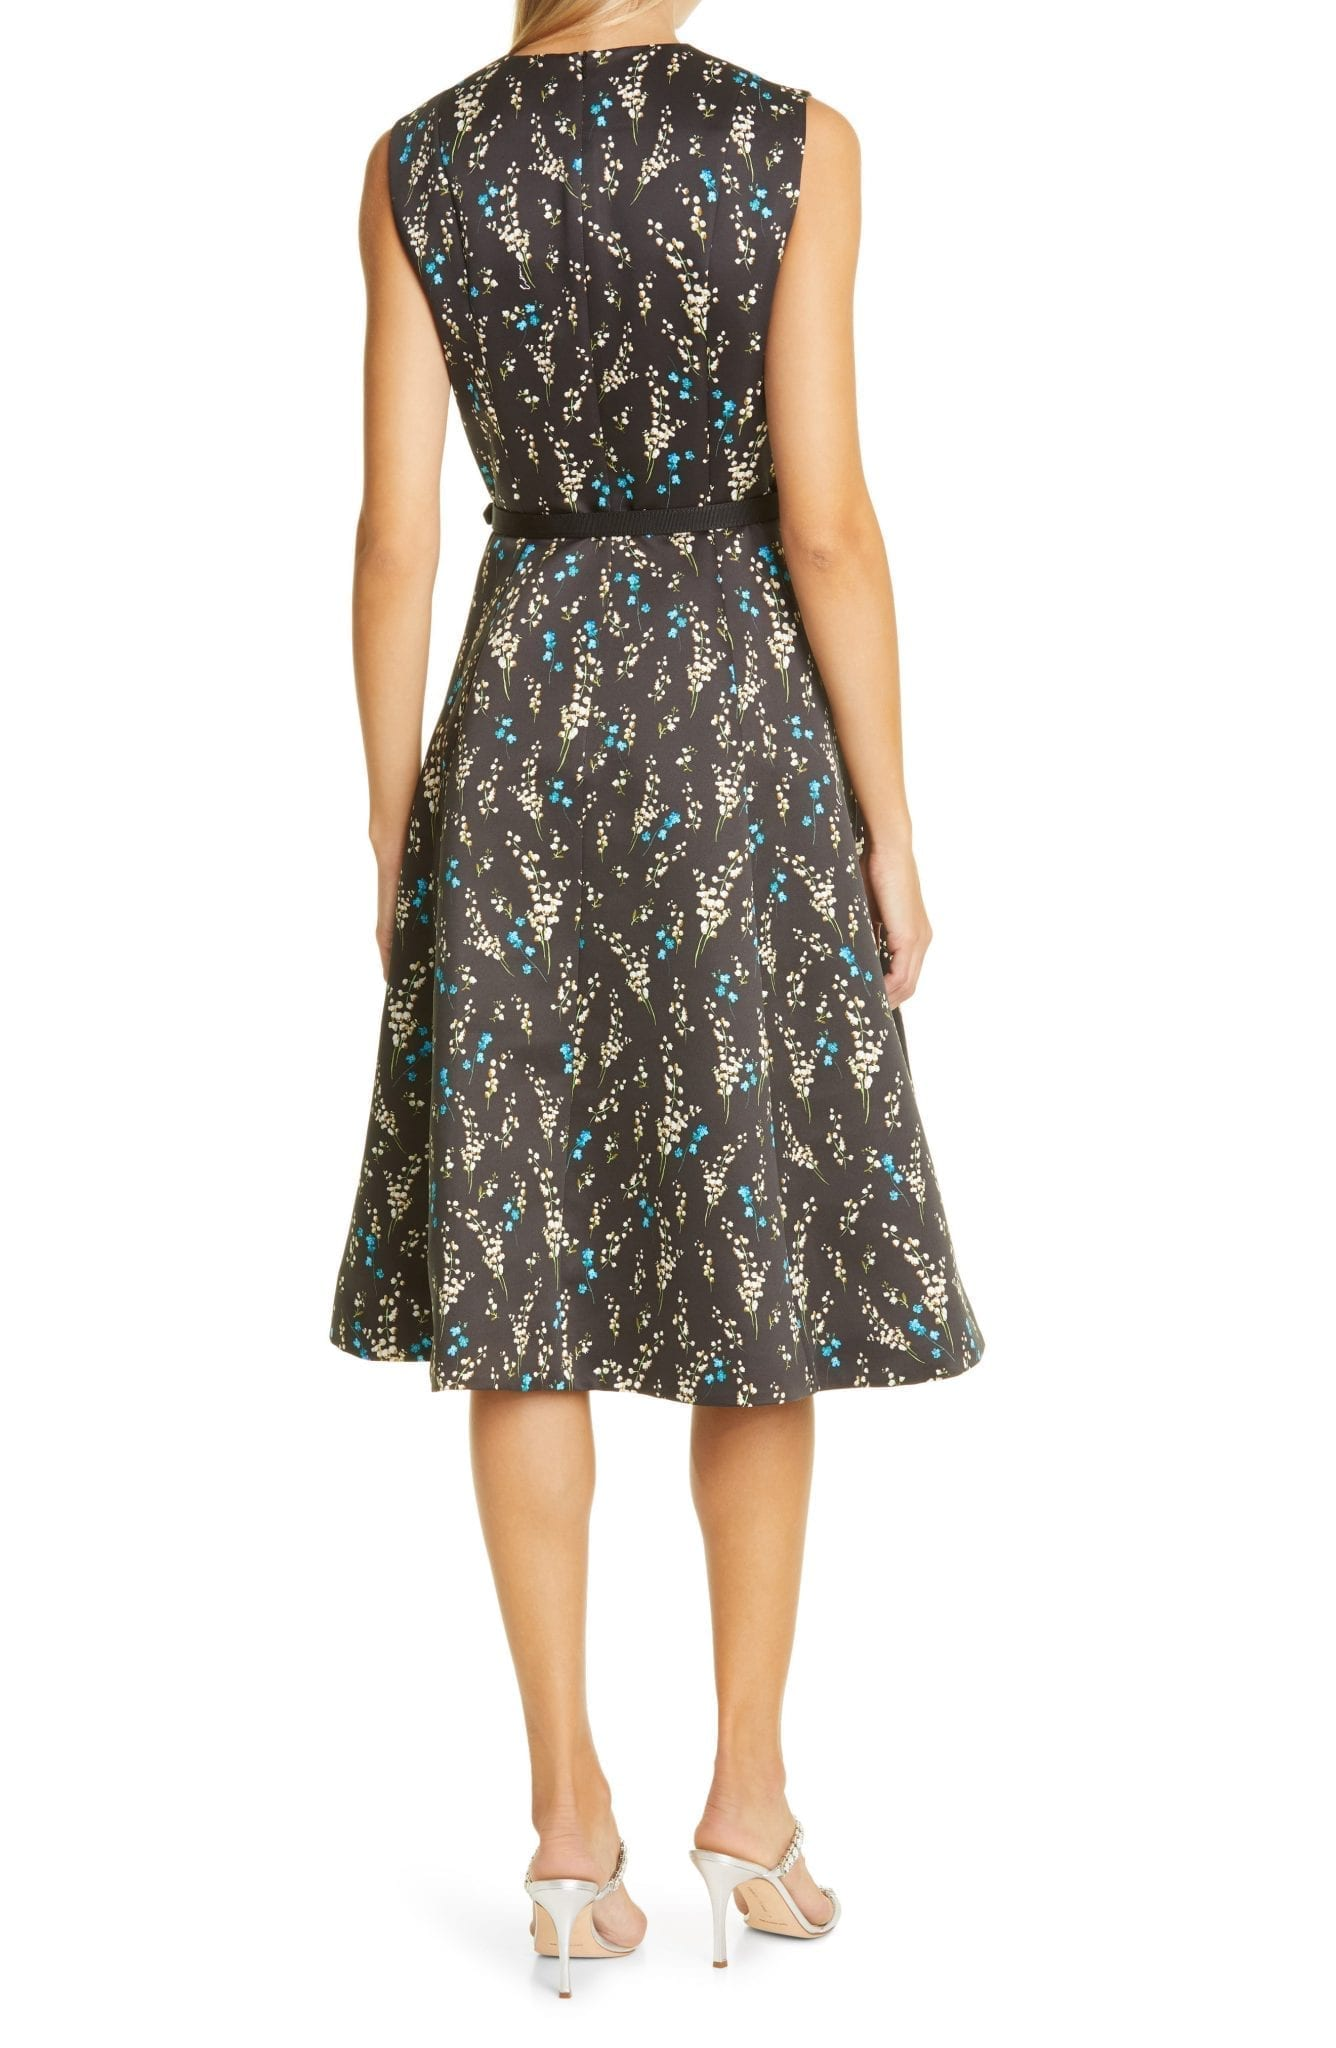 ERDEM Floral Print Belted A-Line Satin Dress